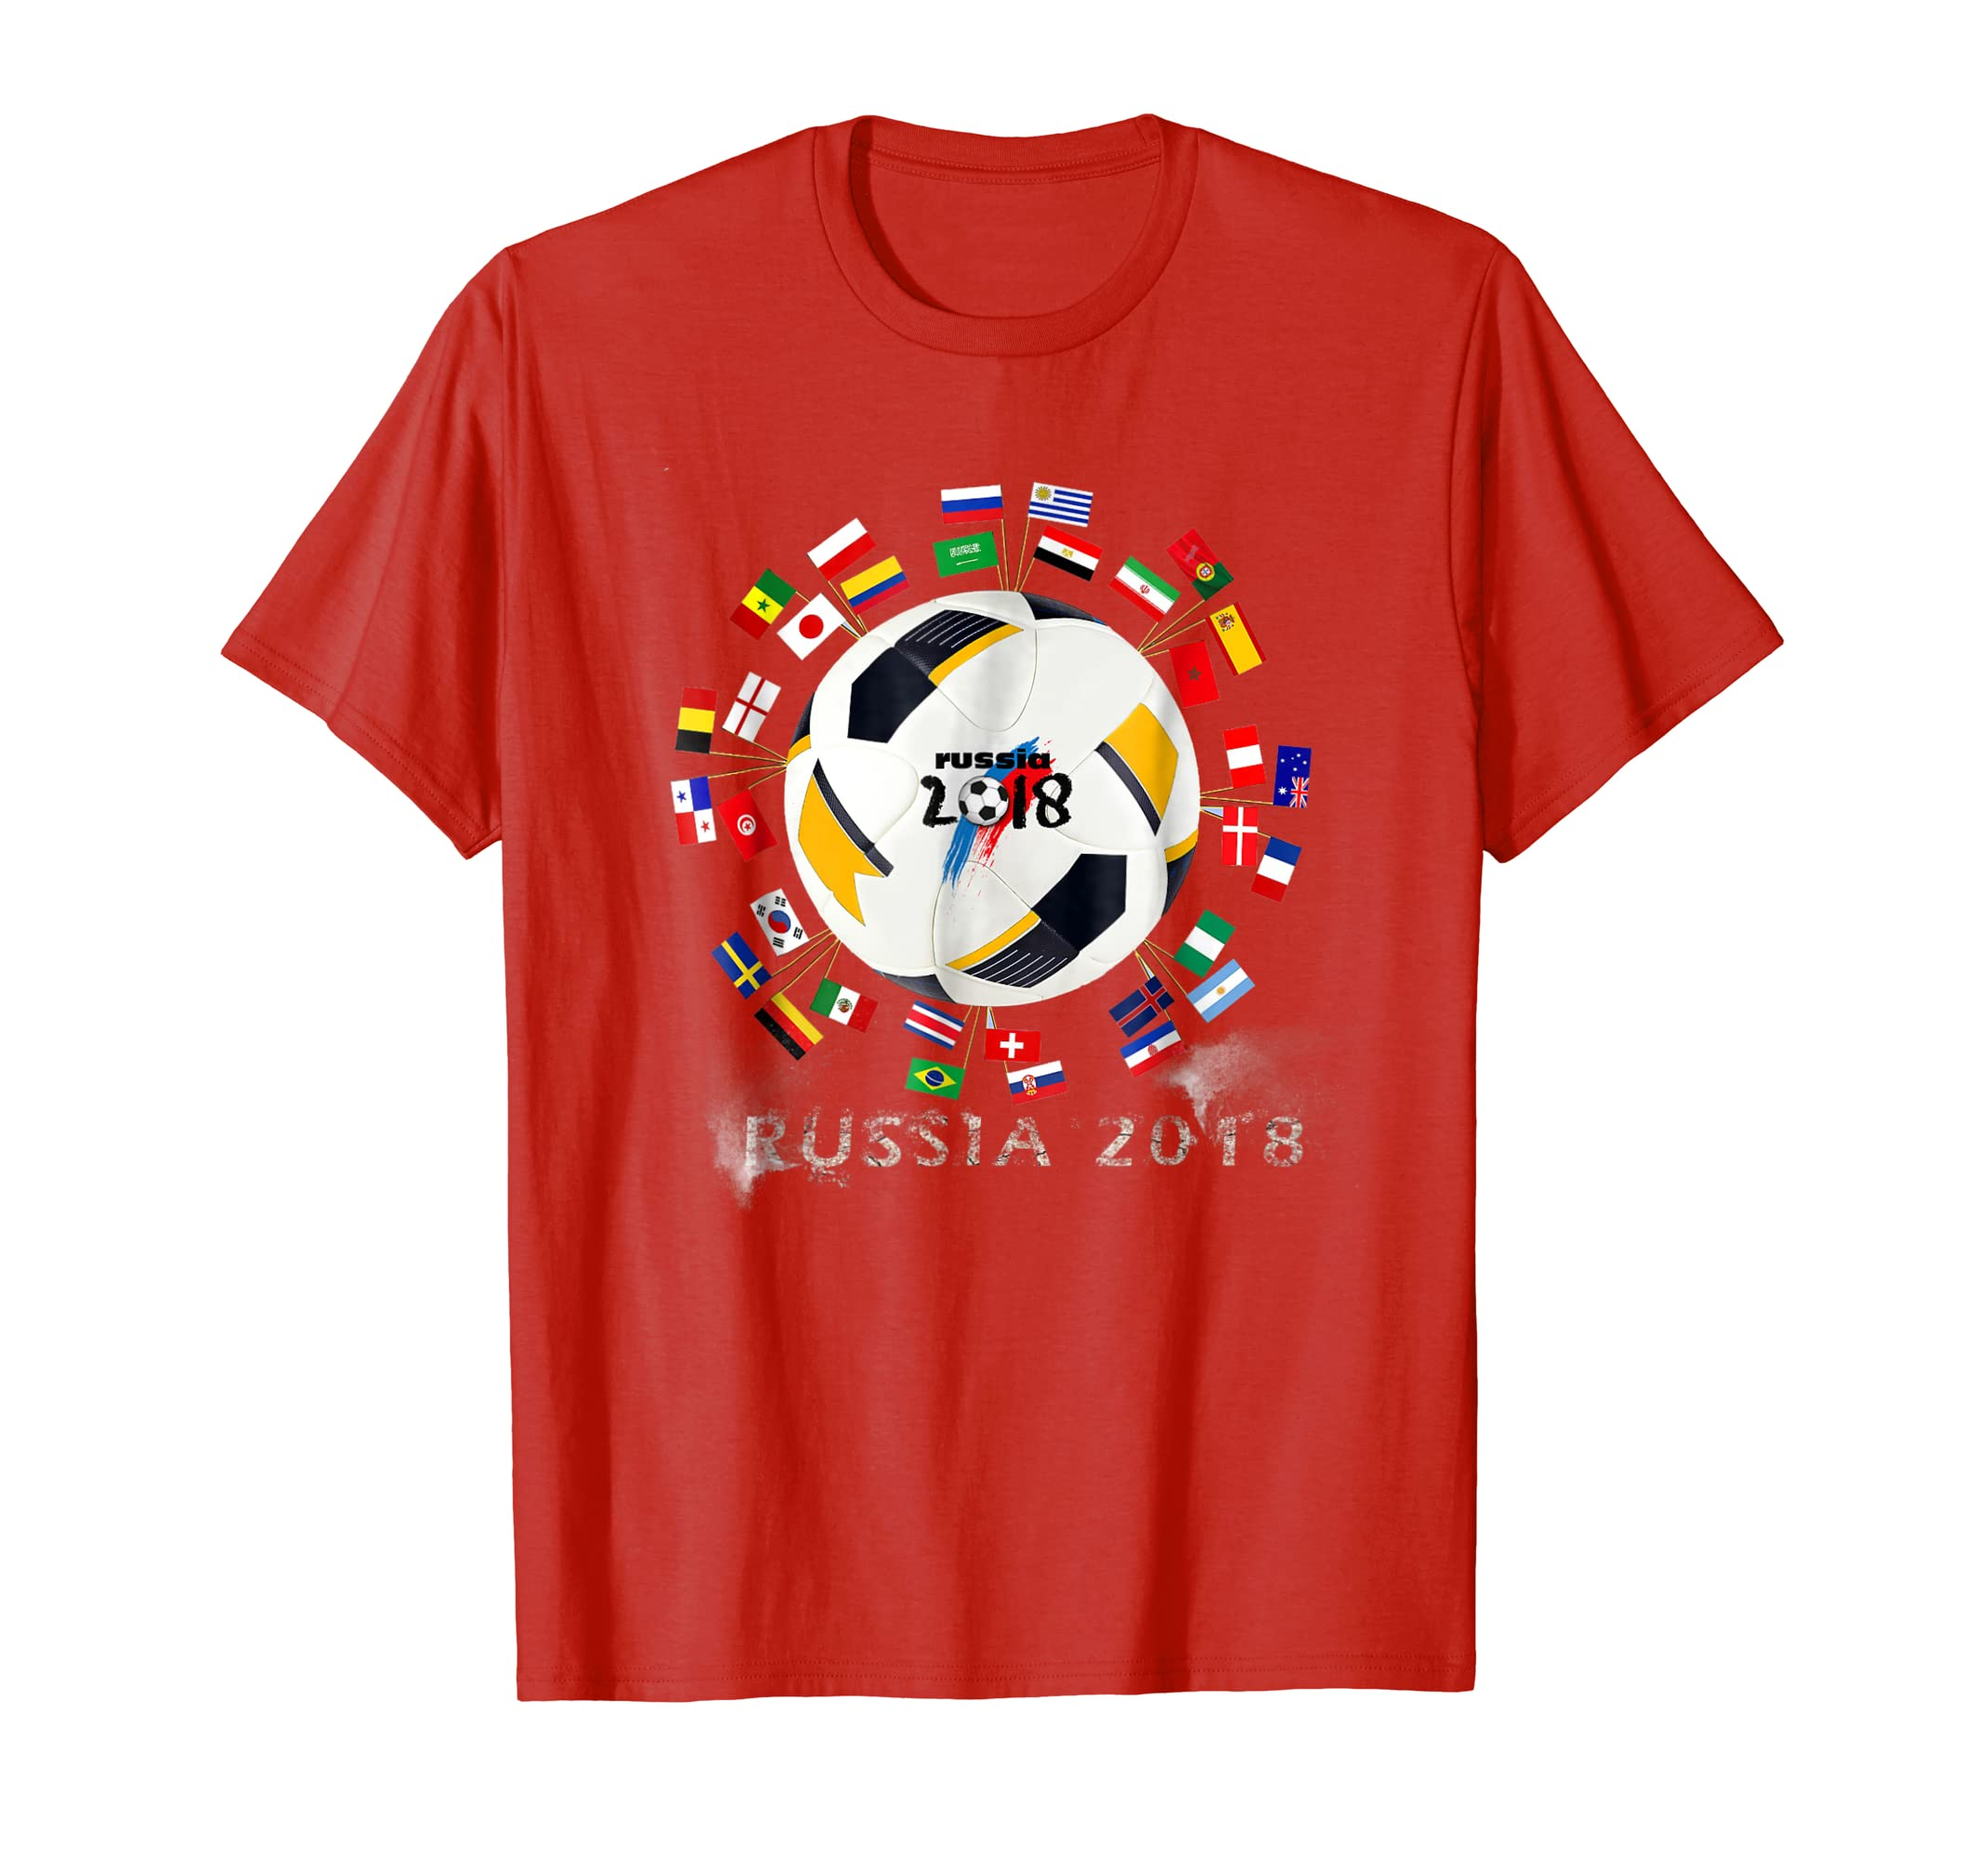 bc5fc167b6c Amazon.com  Russia 2018 Football T-Shirt All 32 Teams Shirt  Clothing